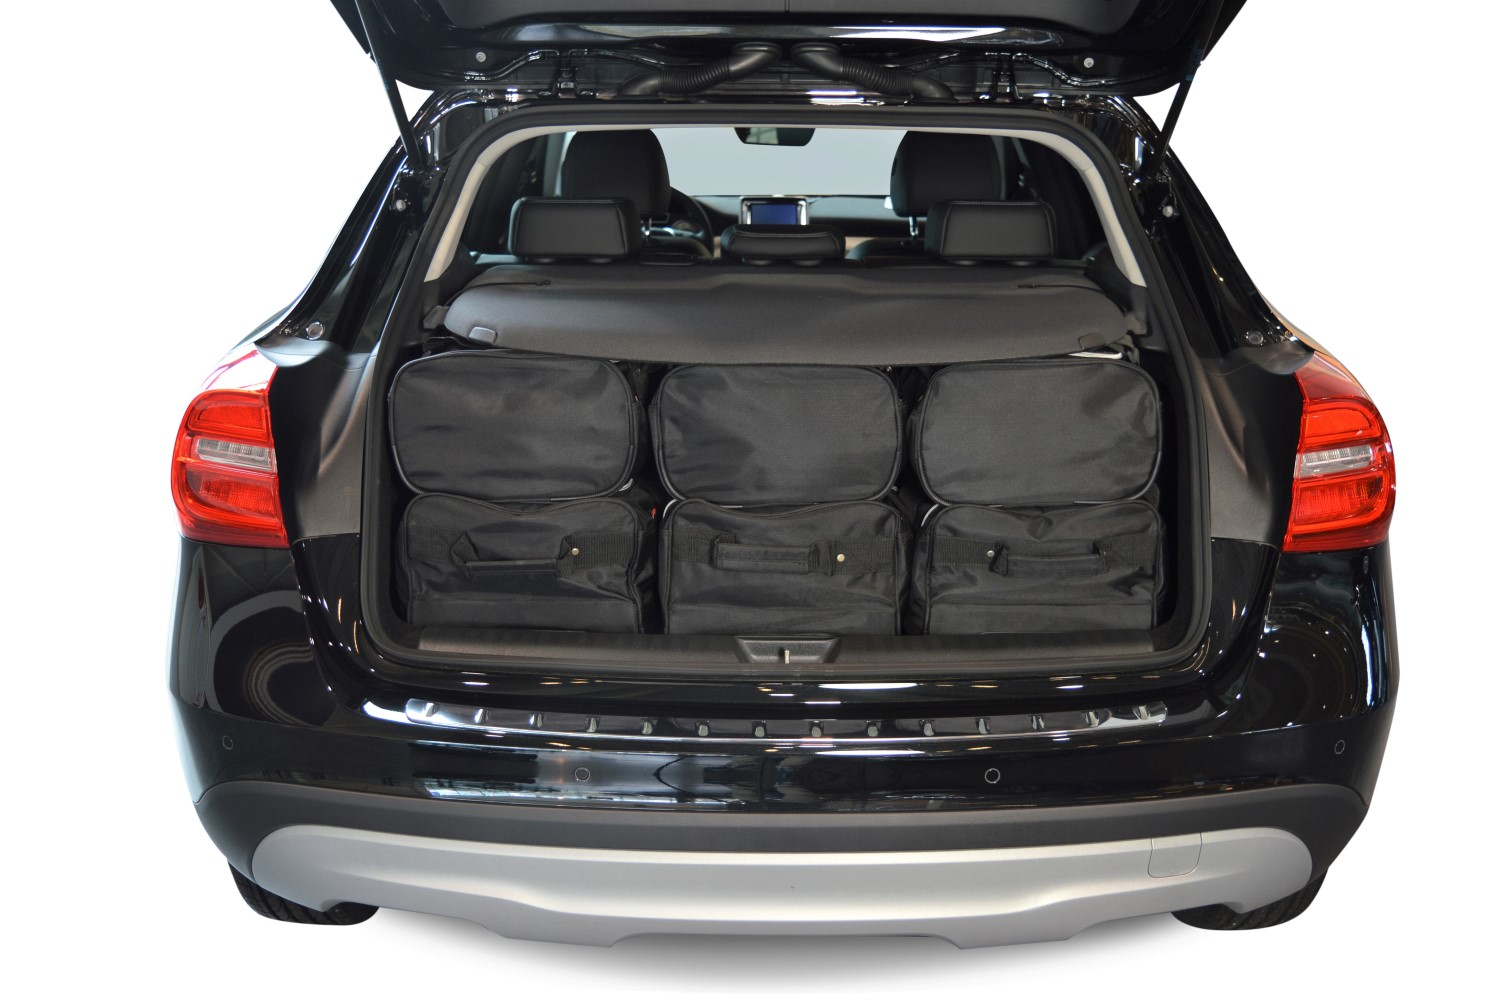 Gla mercedes benz gla x156 2014 present car bags travel for Mercedes benz backpack